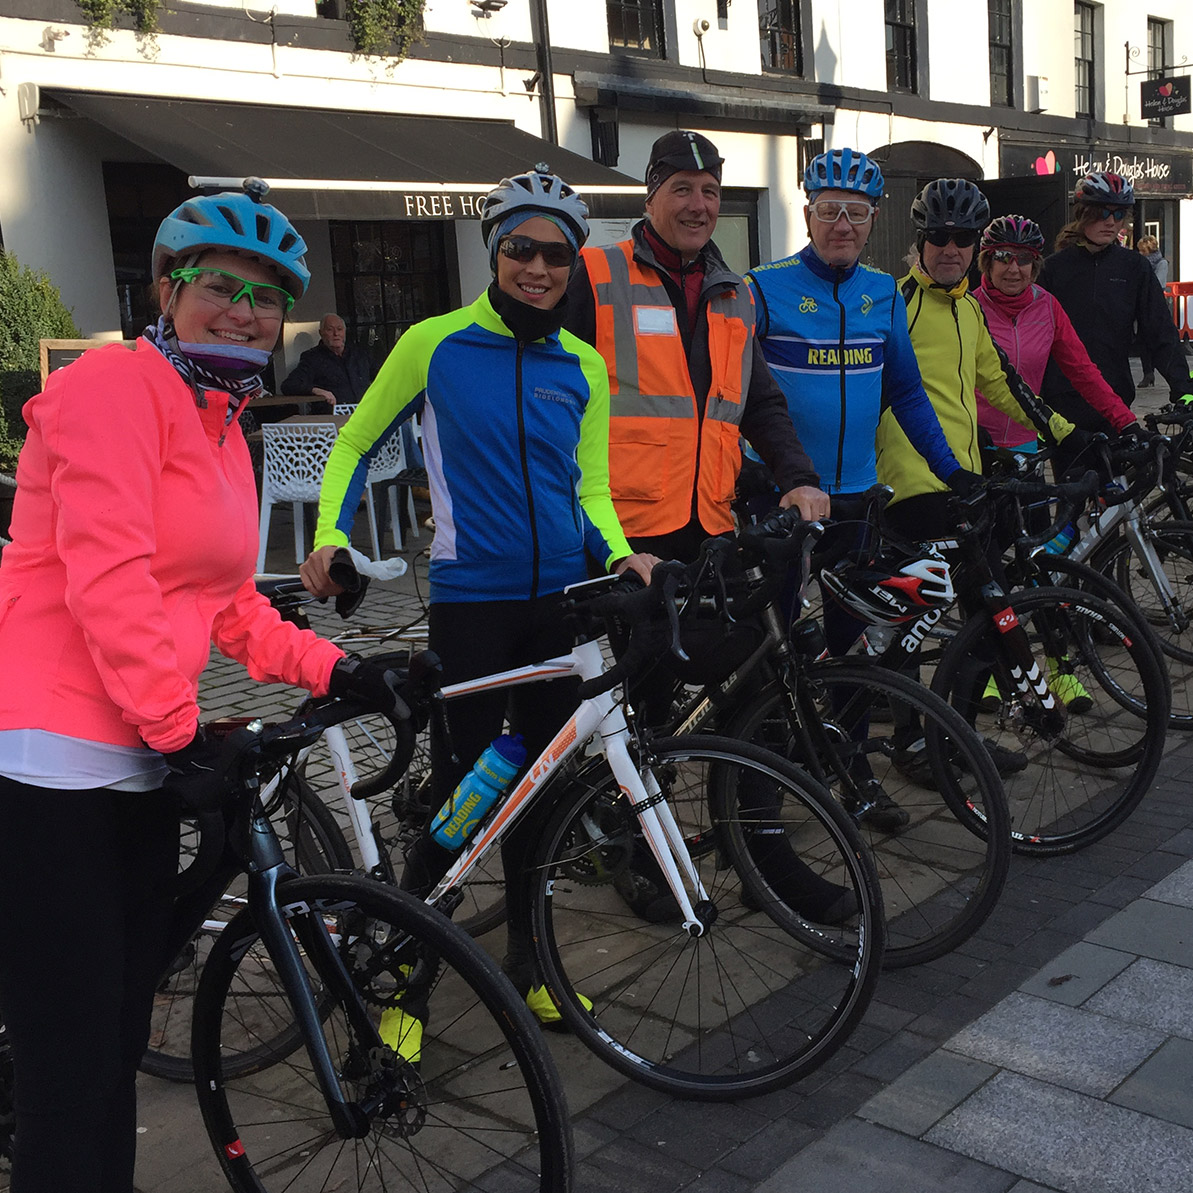 Audax - Accessible events for the casual rider